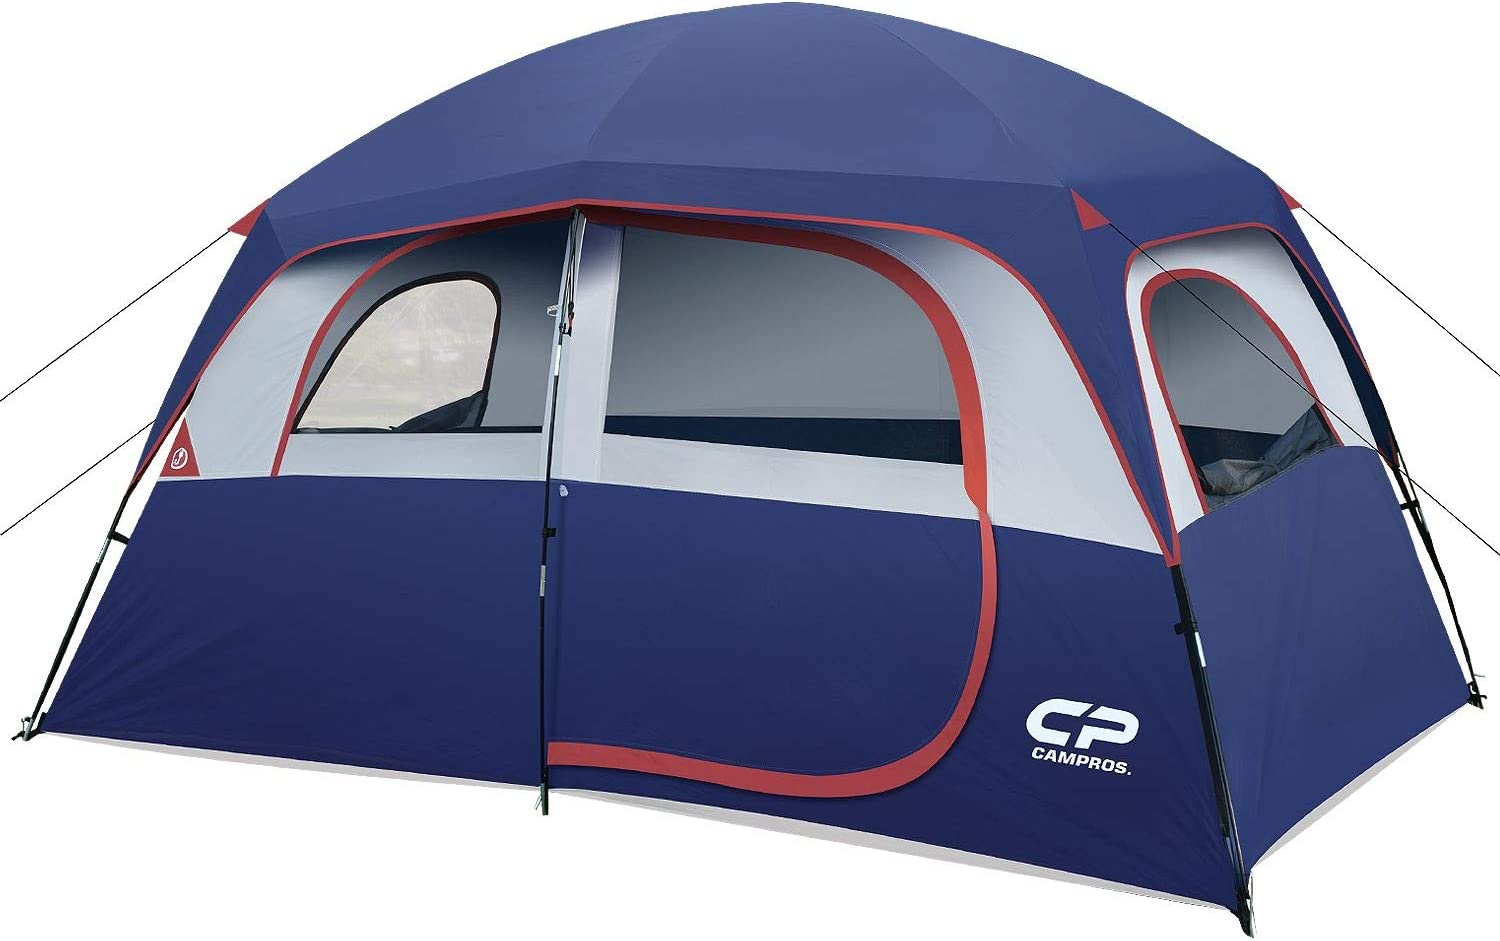 Campros 6-Person Camping Tent